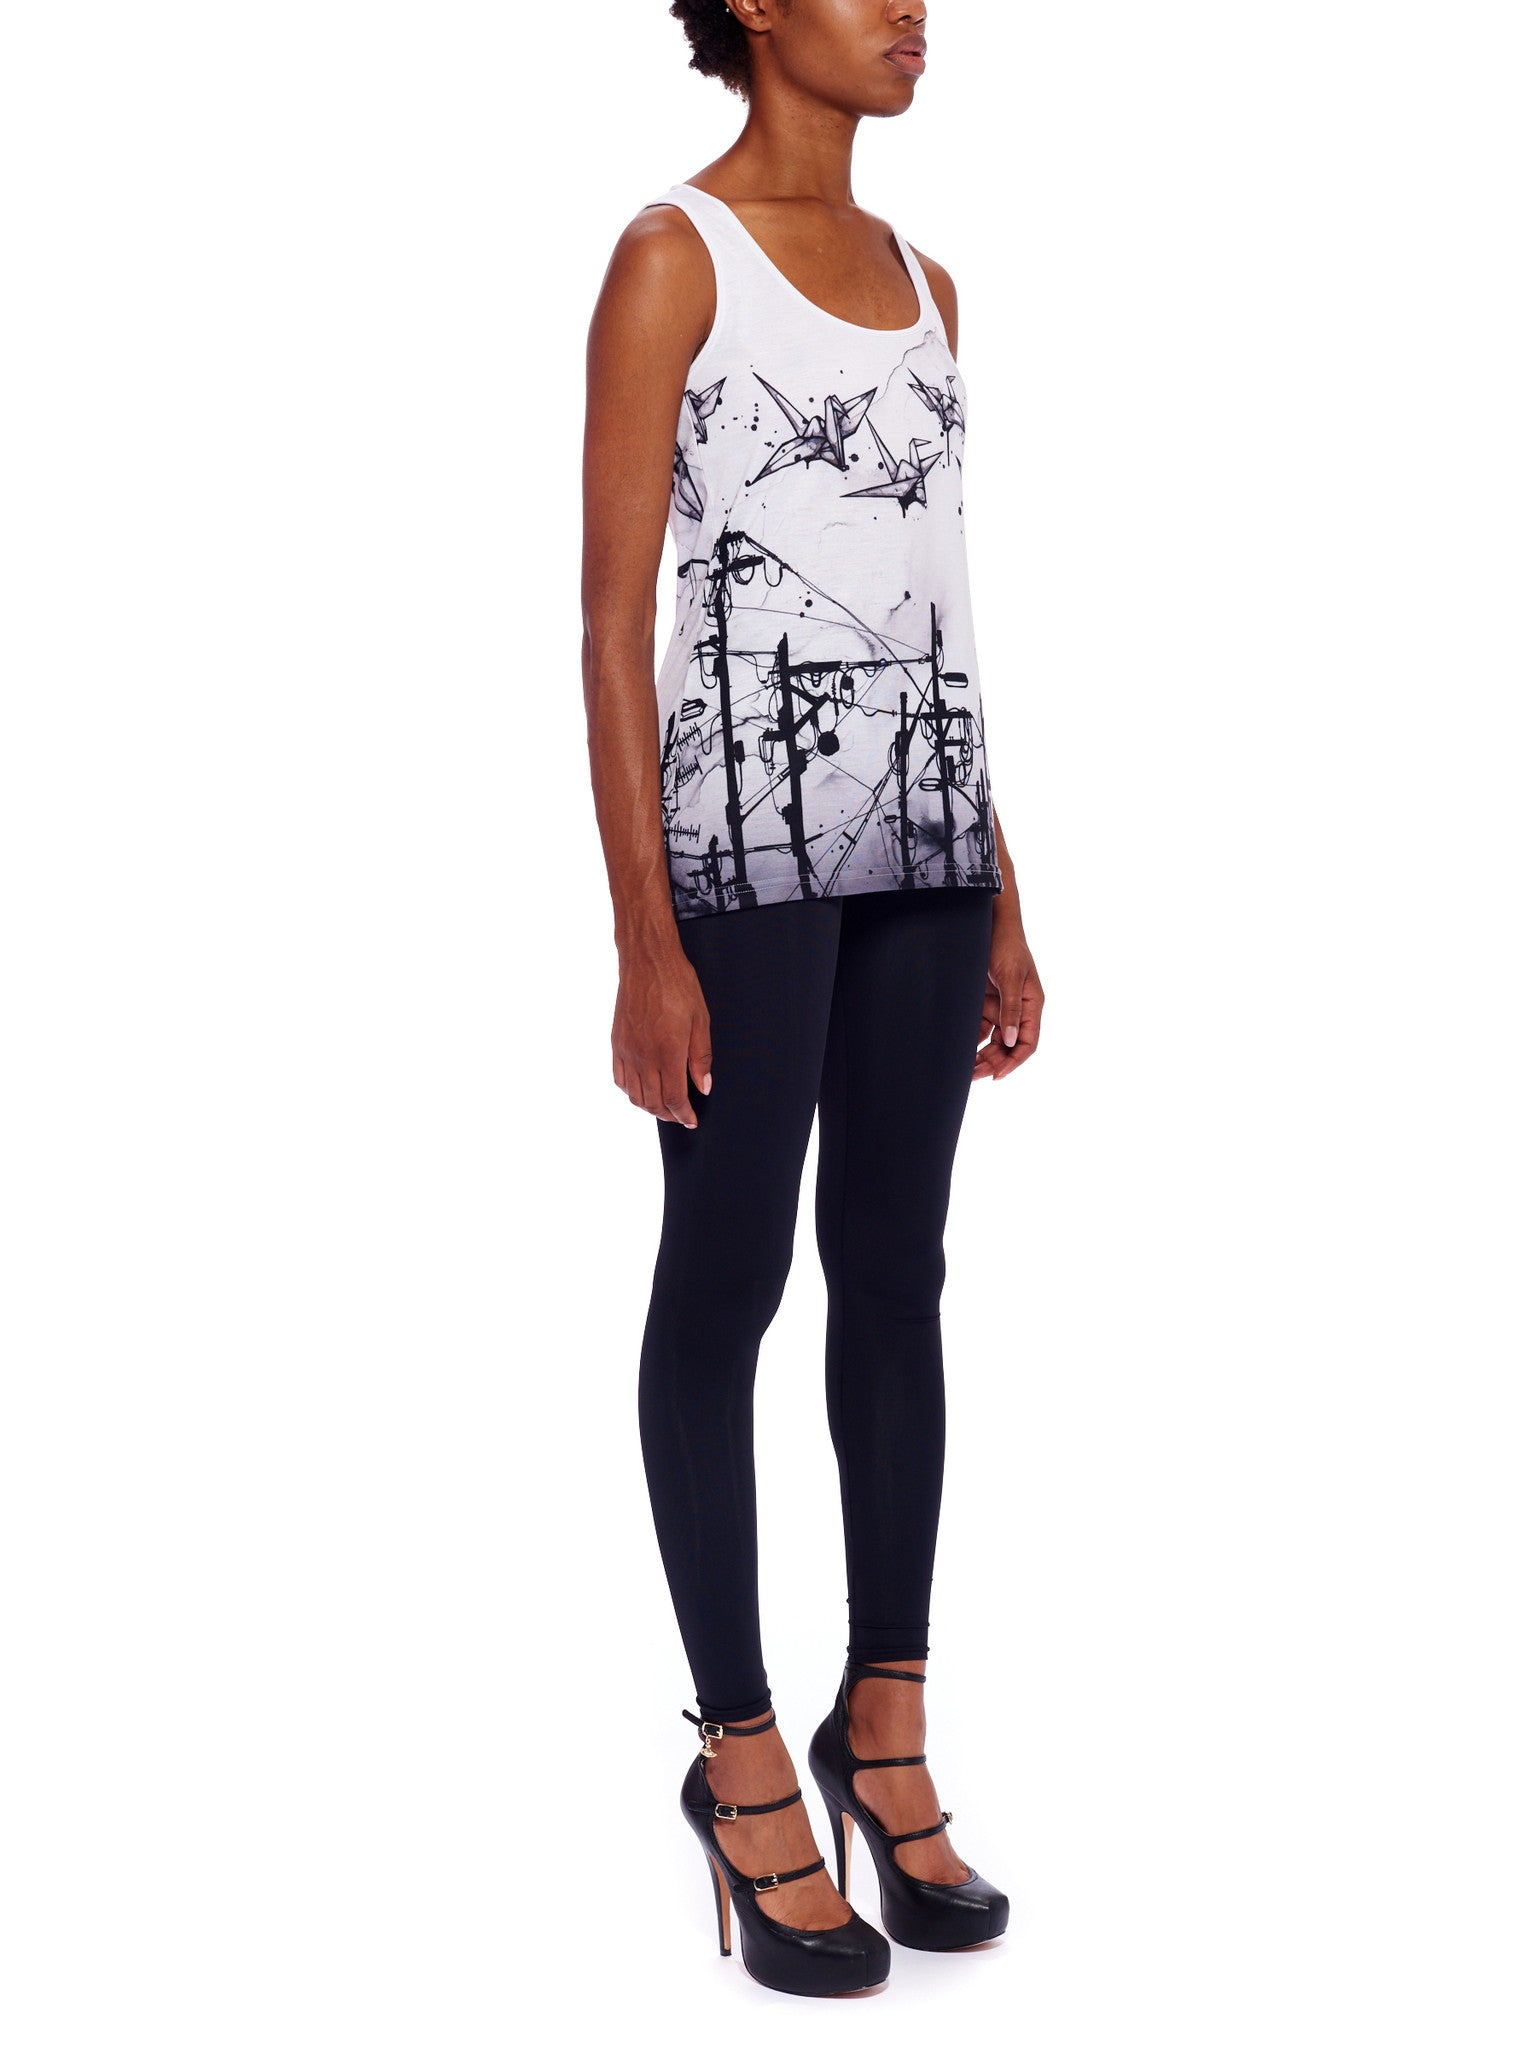 Cable Cranes Women's Classic Tank